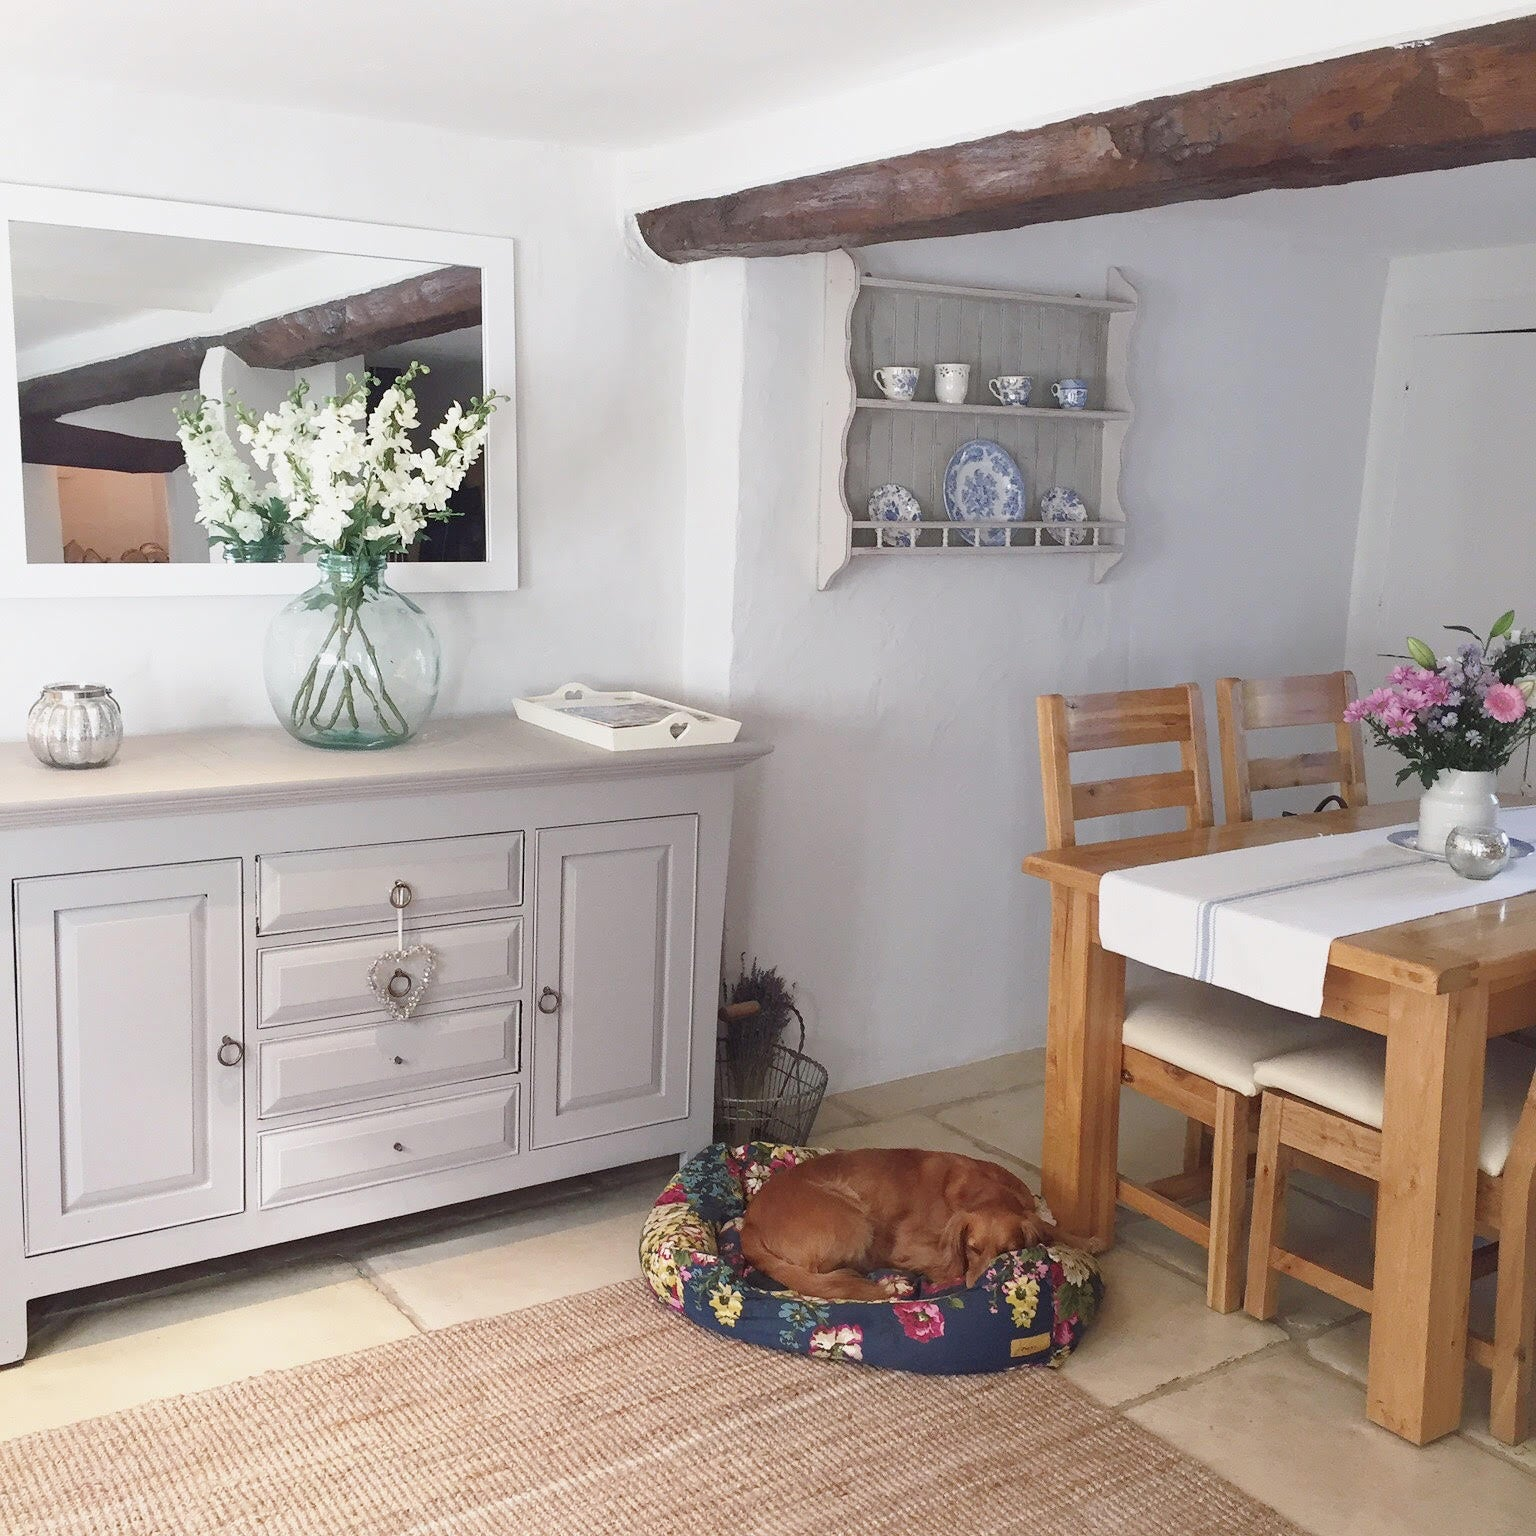 What do you think of the dining room in this gorgeous country cottage in the UK? See the full home tour on www.lovetohome.co.uk